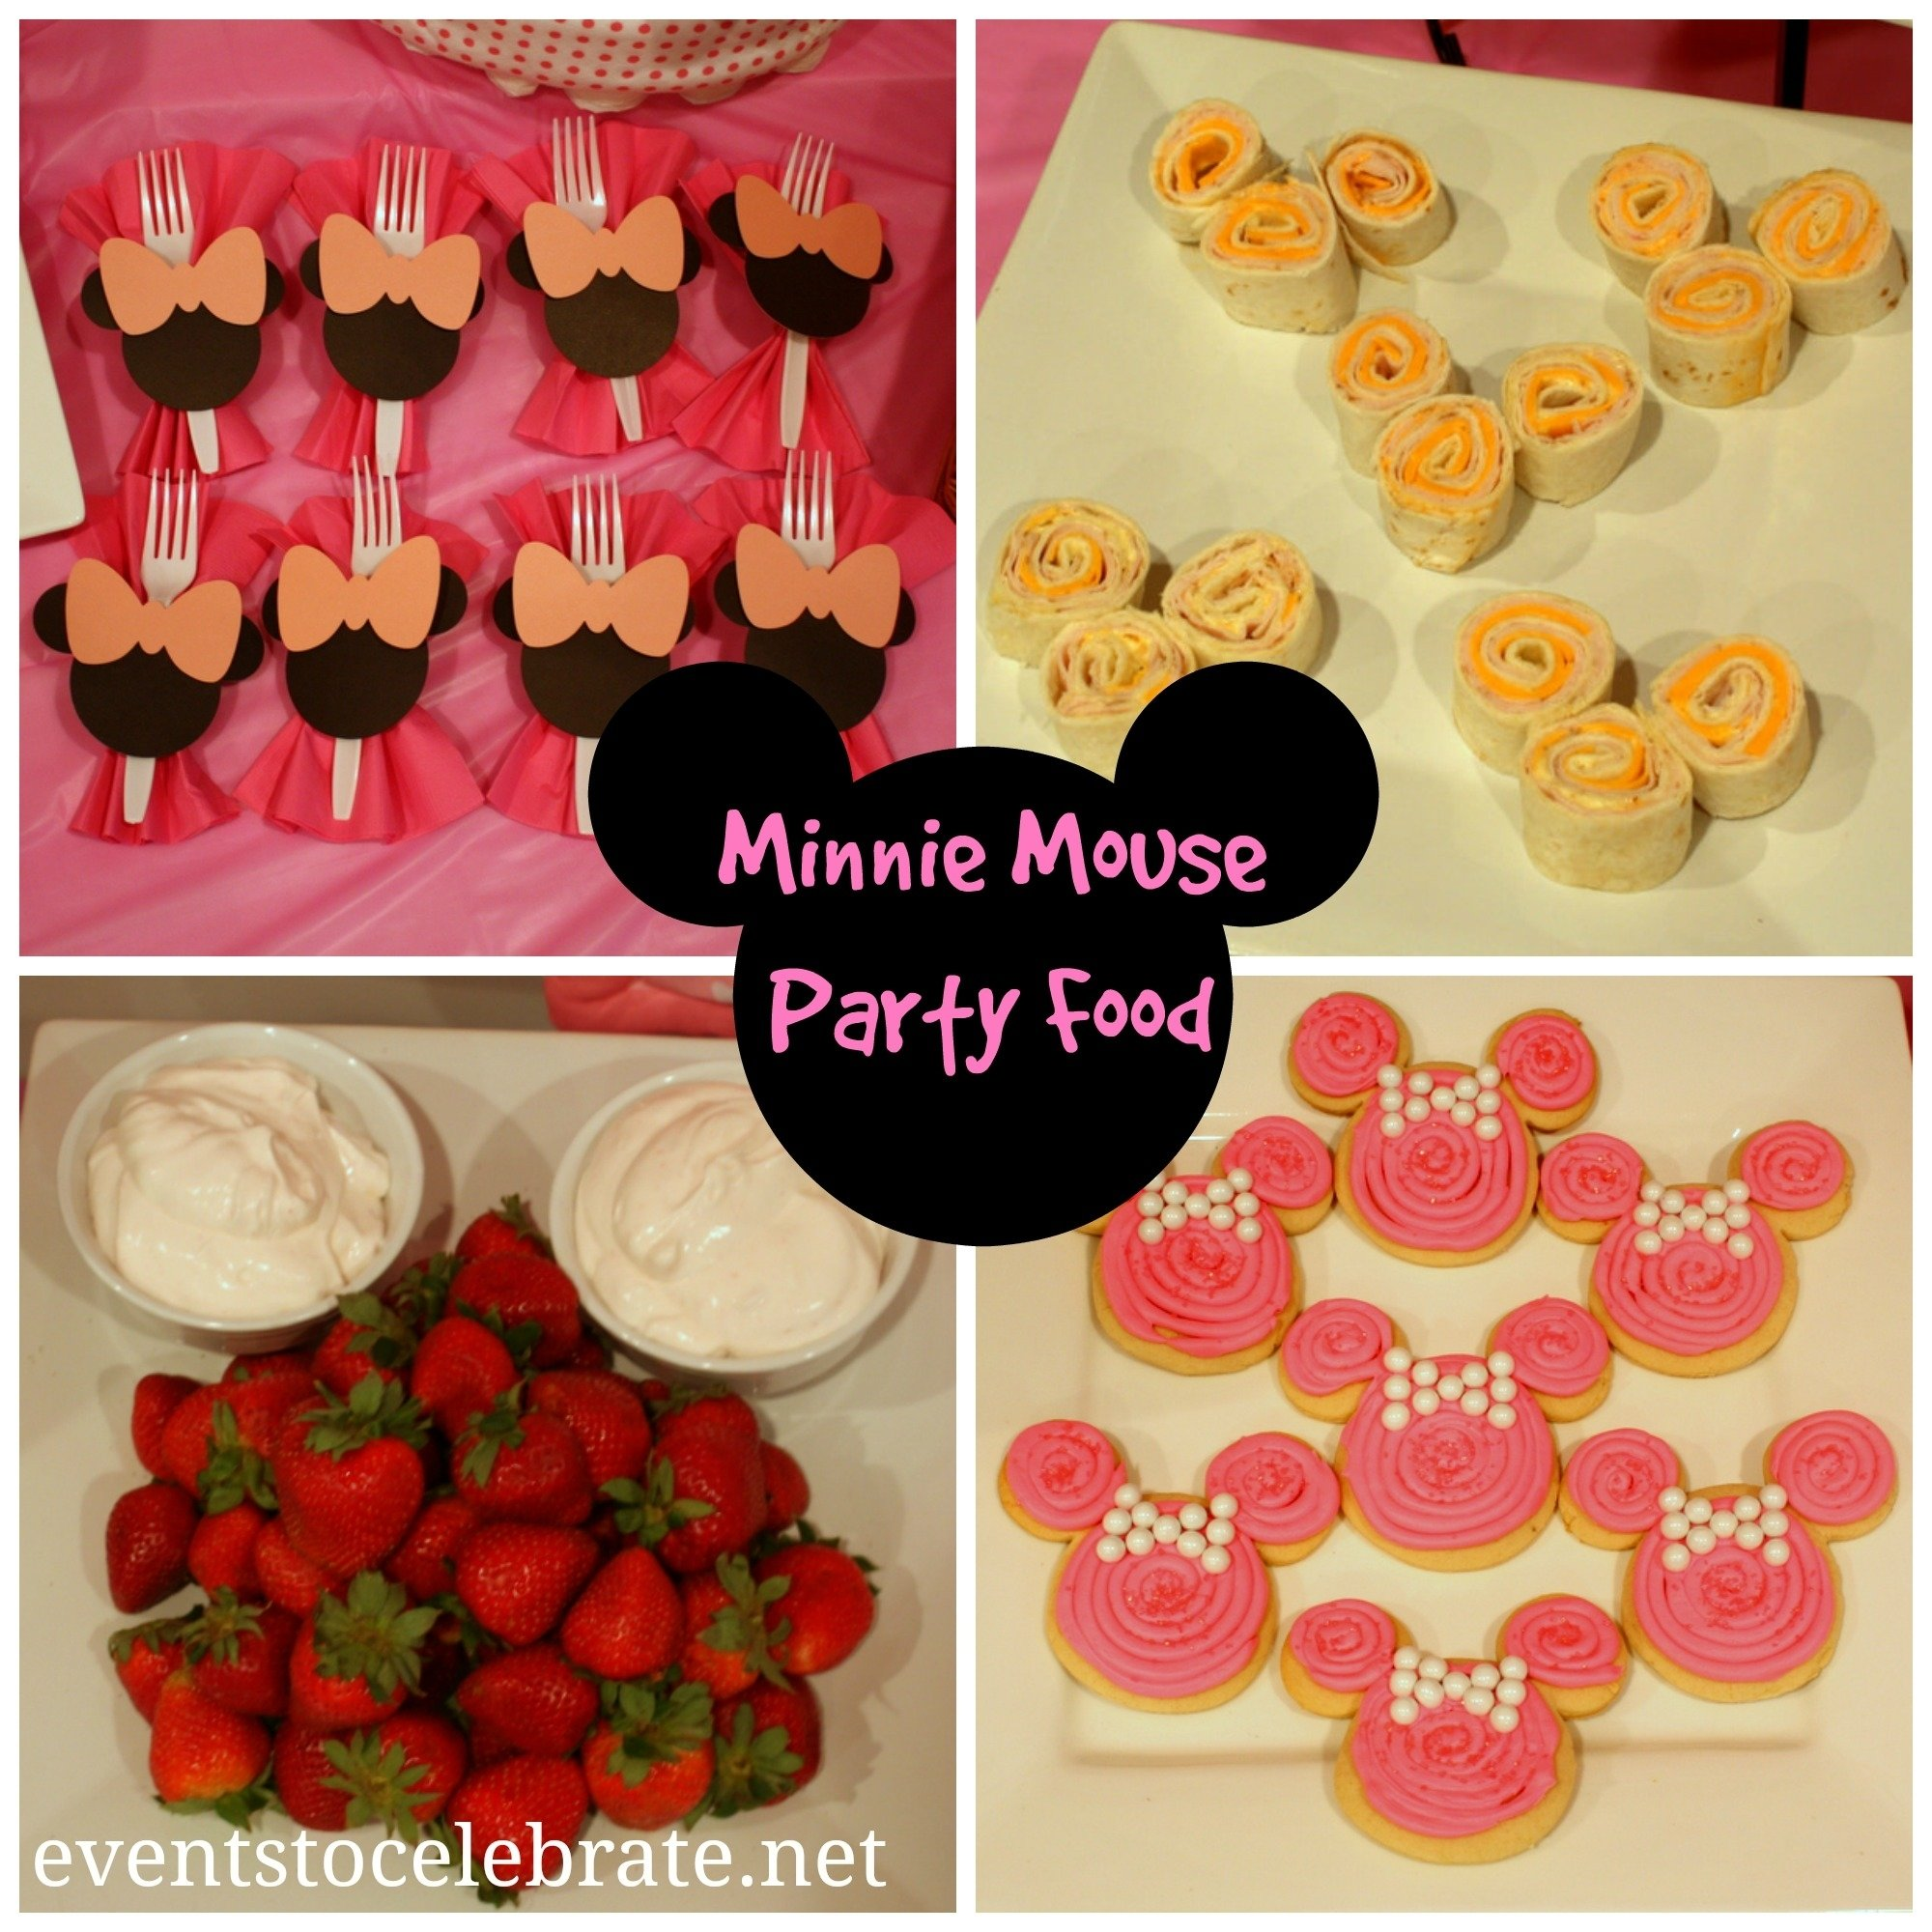 10 Ideal Mickey Mouse Birthday Party Food Ideas minnie mouse baby shower ideas minnie mouse food ideas and mice 1 2021